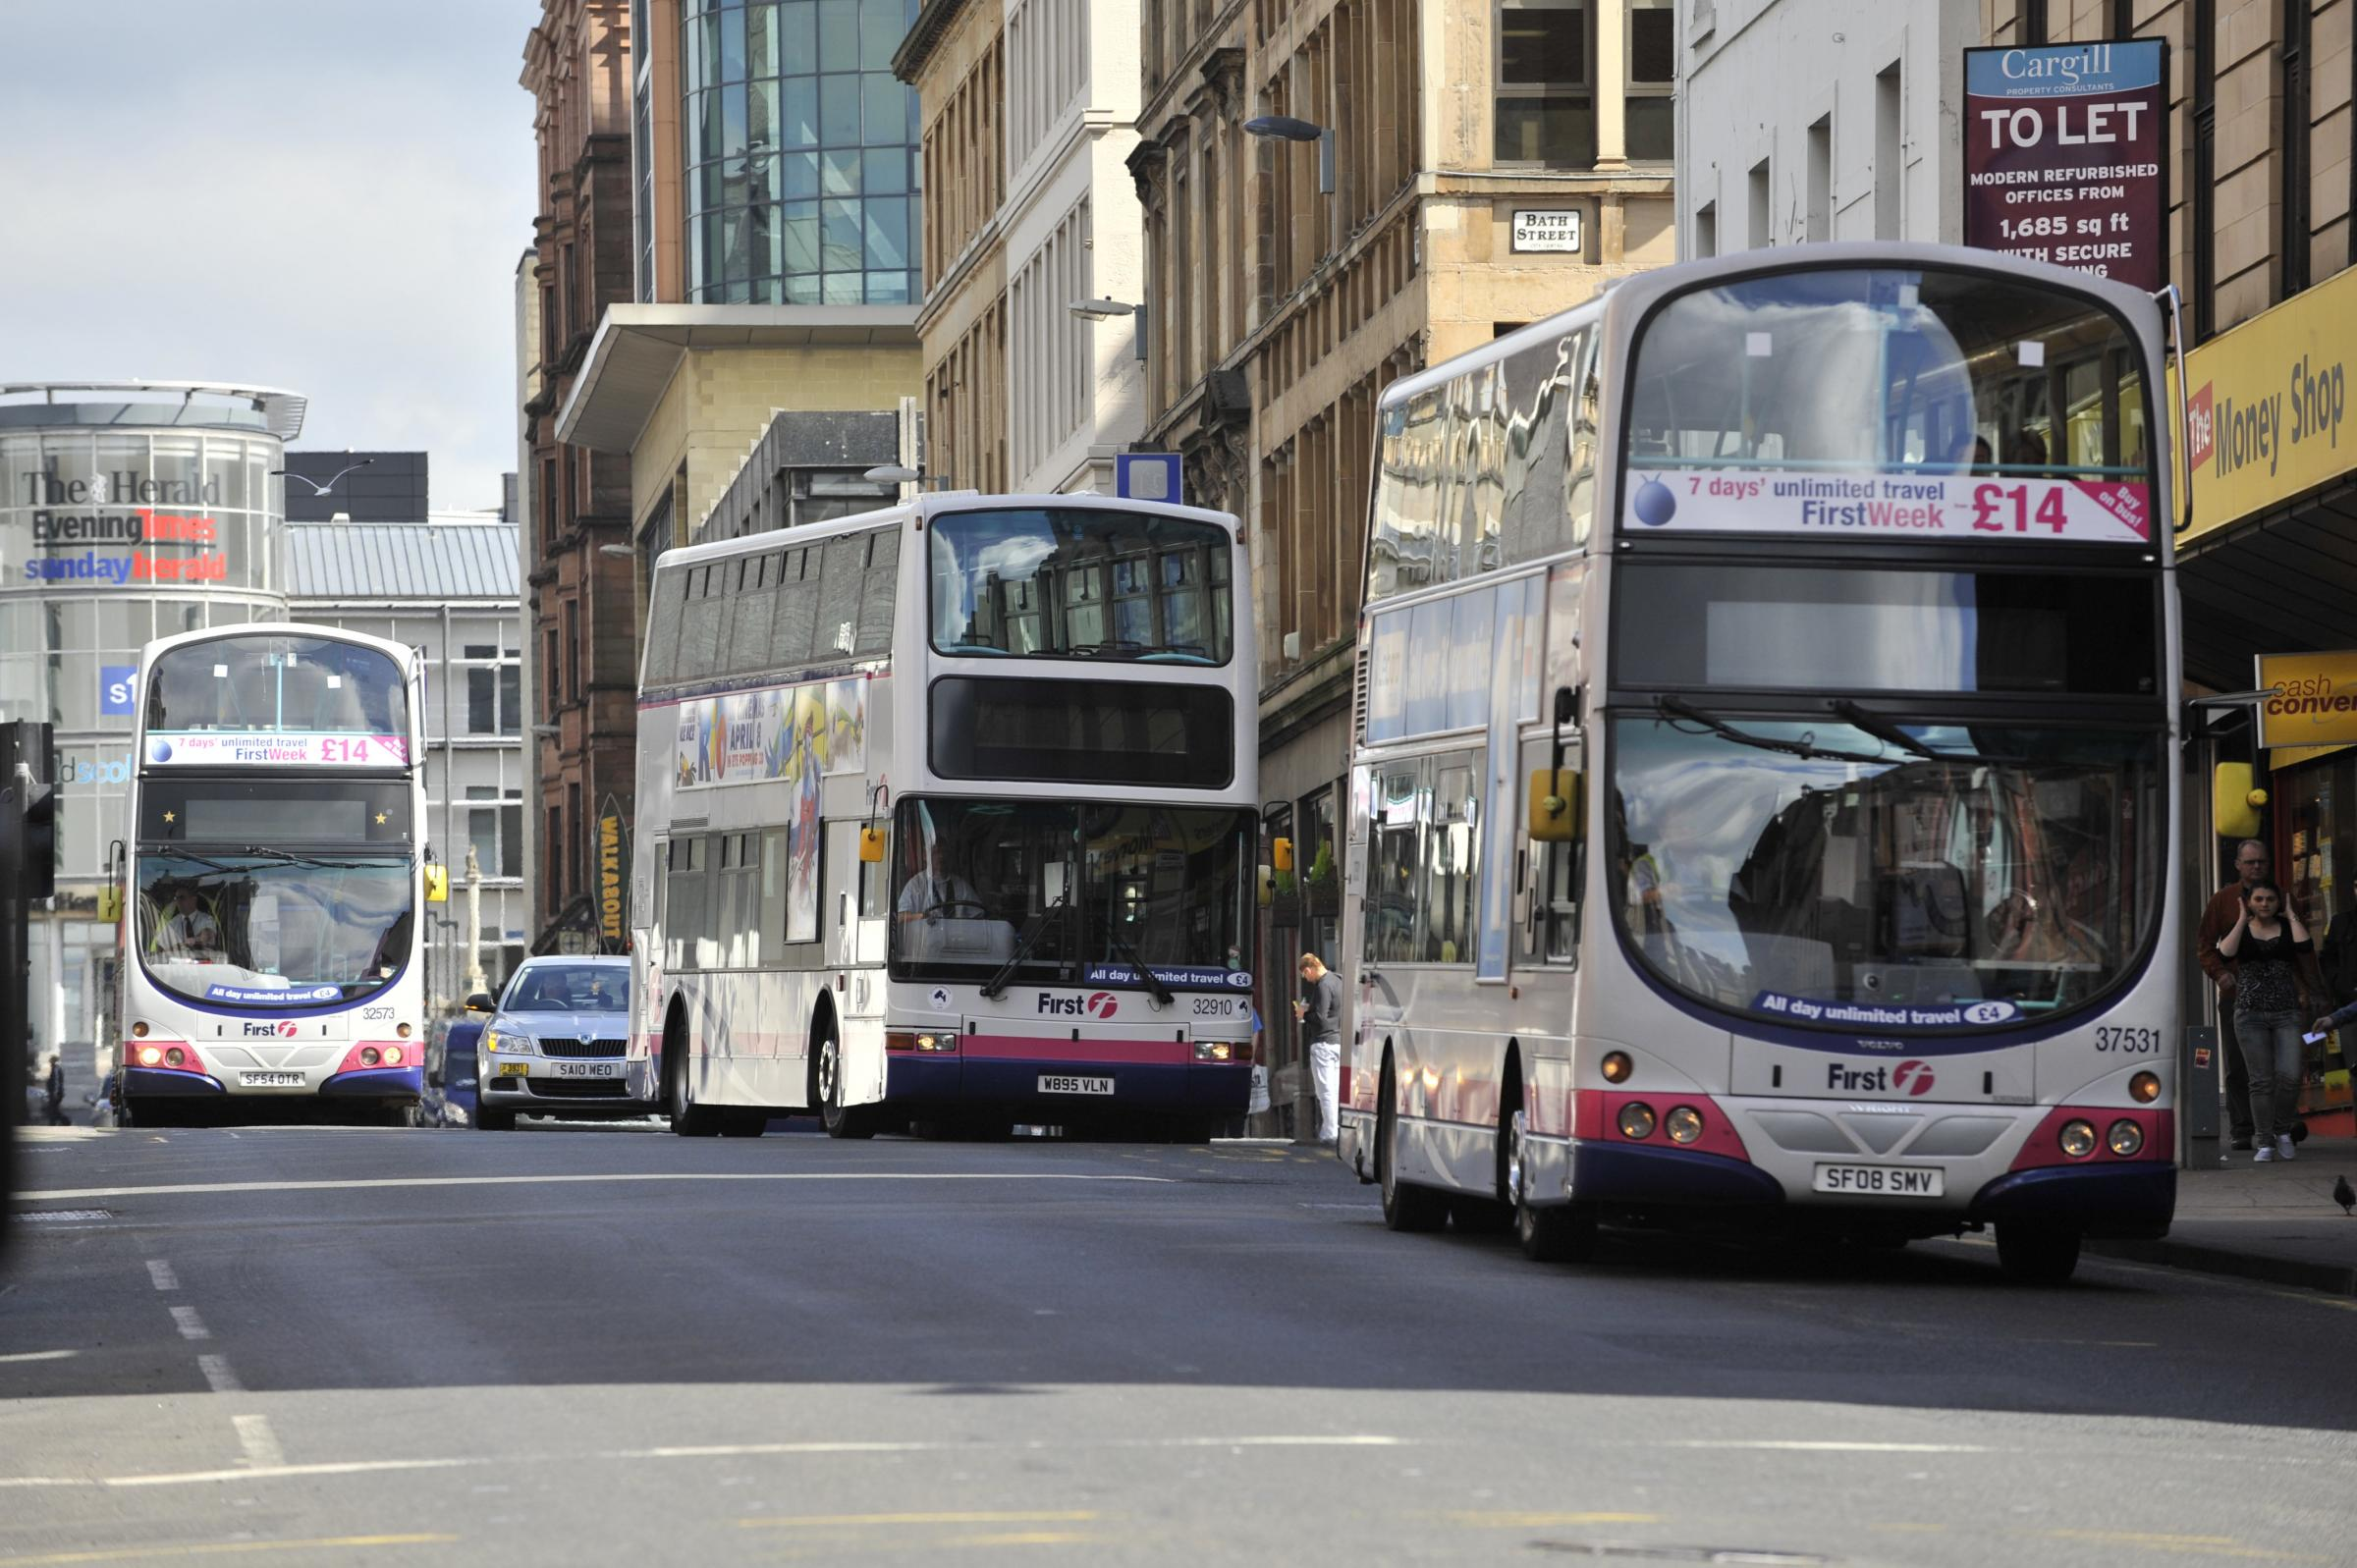 FirstGroup includes the FirstBus operation